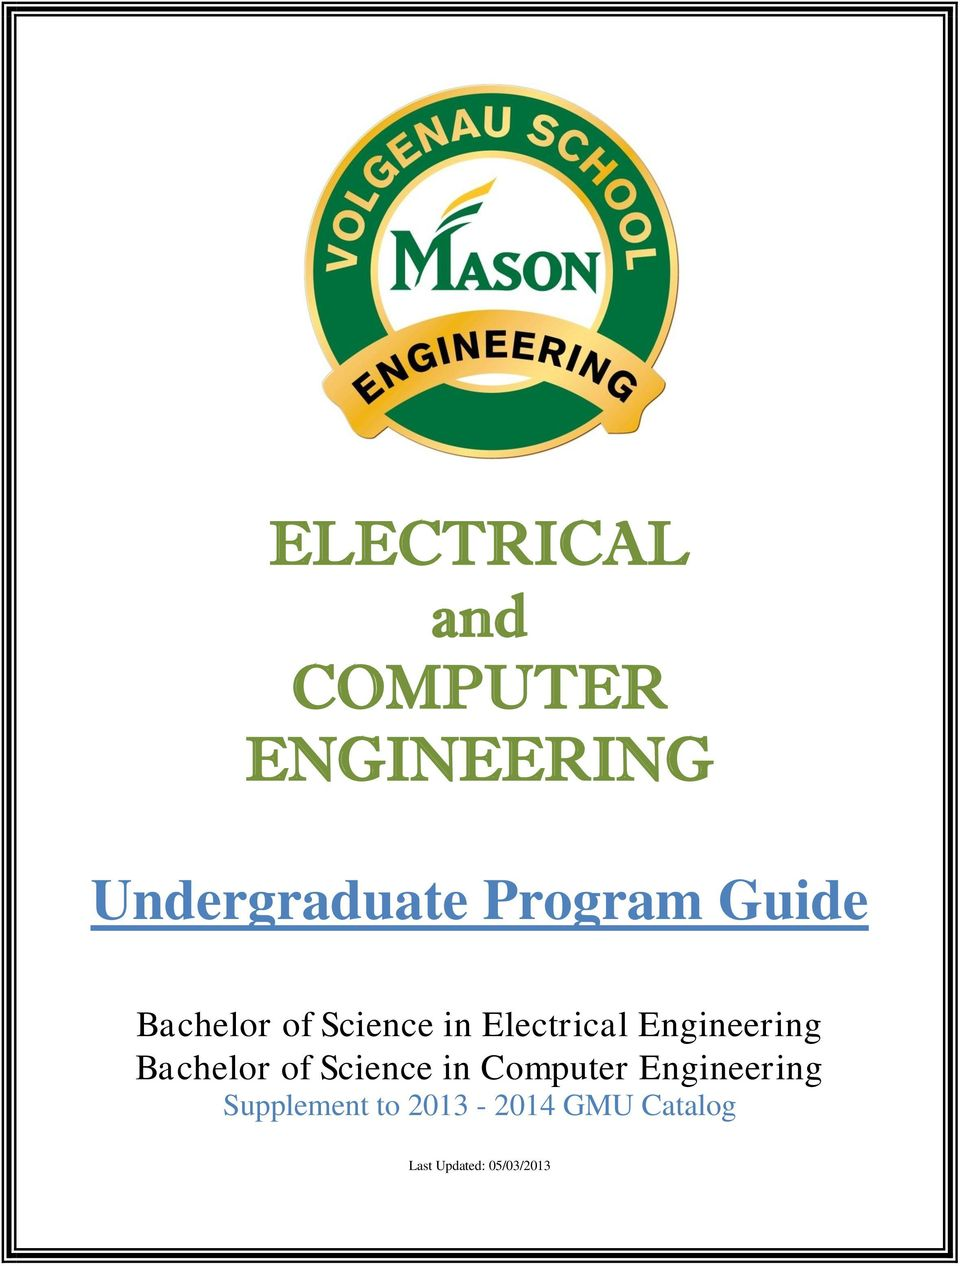 Engineering Bachelor of Science in Computer